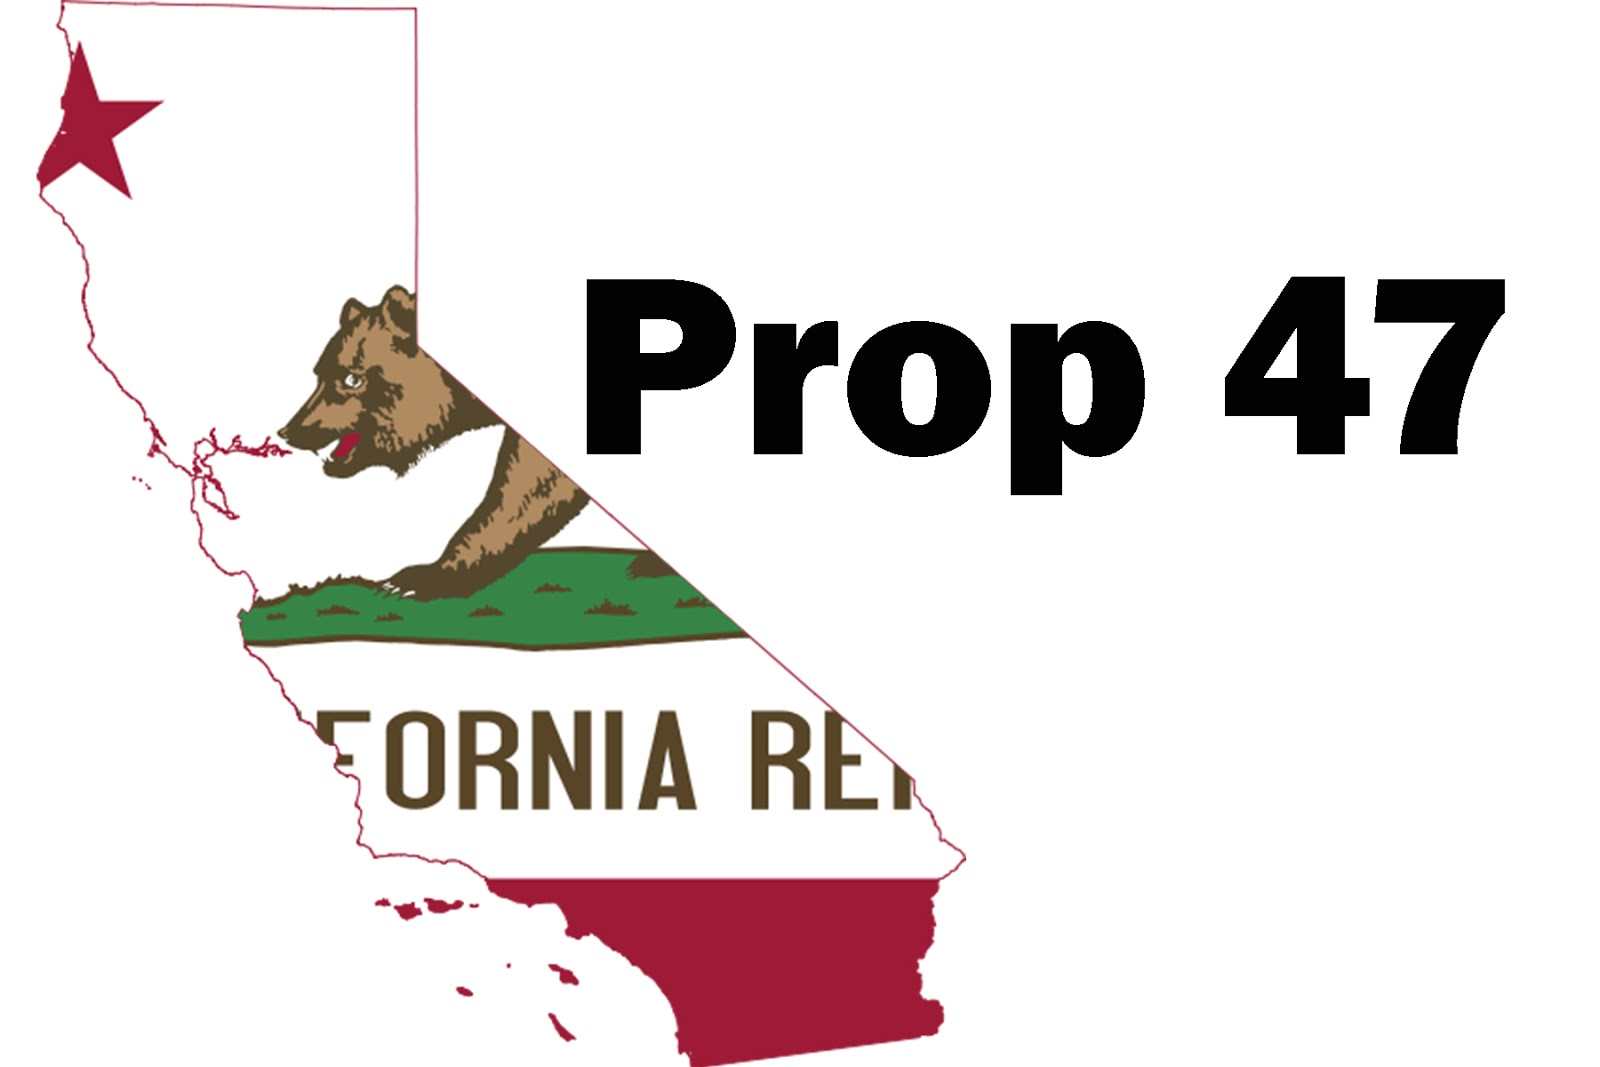 Cooper to Introduce Legislation to Modify Prop. 47